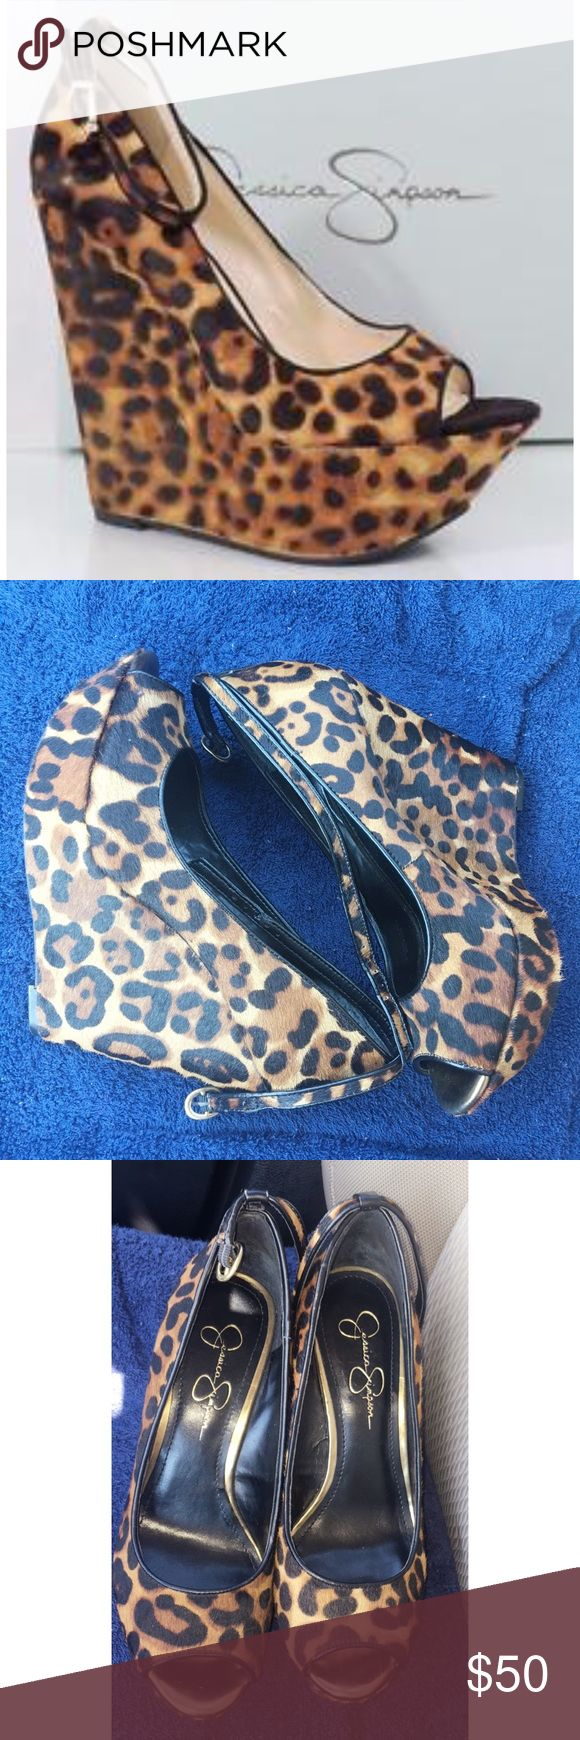 ✨Jessica Simpson Leopard Wedges Brand: Jessica Simpson Style: Leopard Wedge Platform Pumps--Real Pony Hair Fur Size: 9  ❗️Worn twice, personally feels like a size 9.5 to me❗️ Jessica Simpson Shoes Wedges